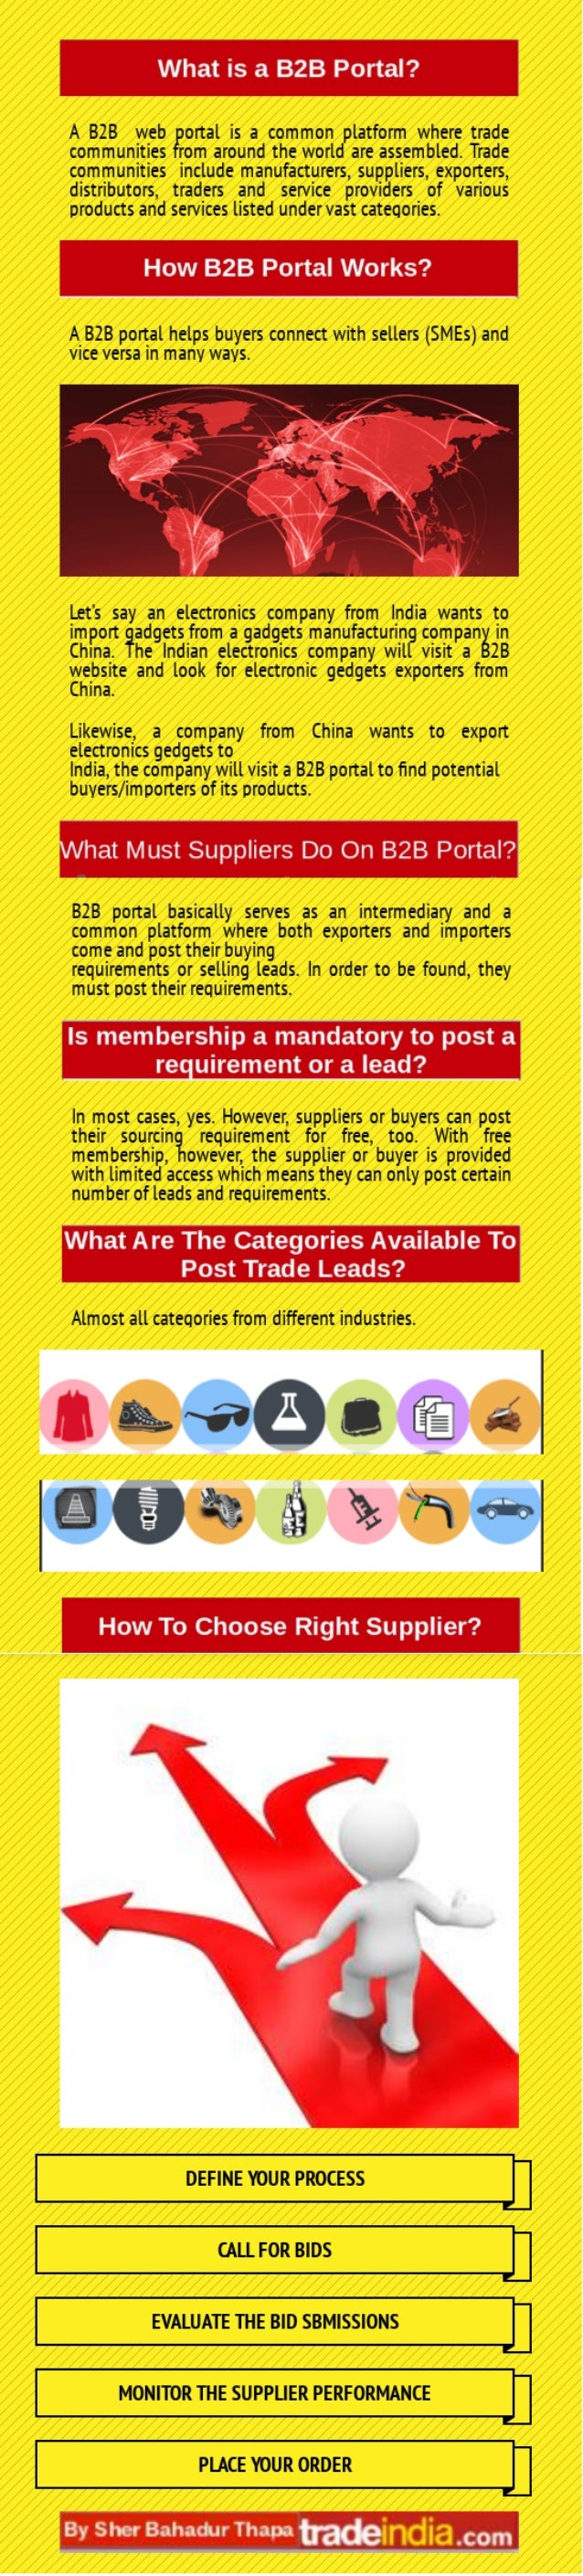 What Is A B2B Portal/Website And How It Can Help Promote Global SMEs - B2B Infographic